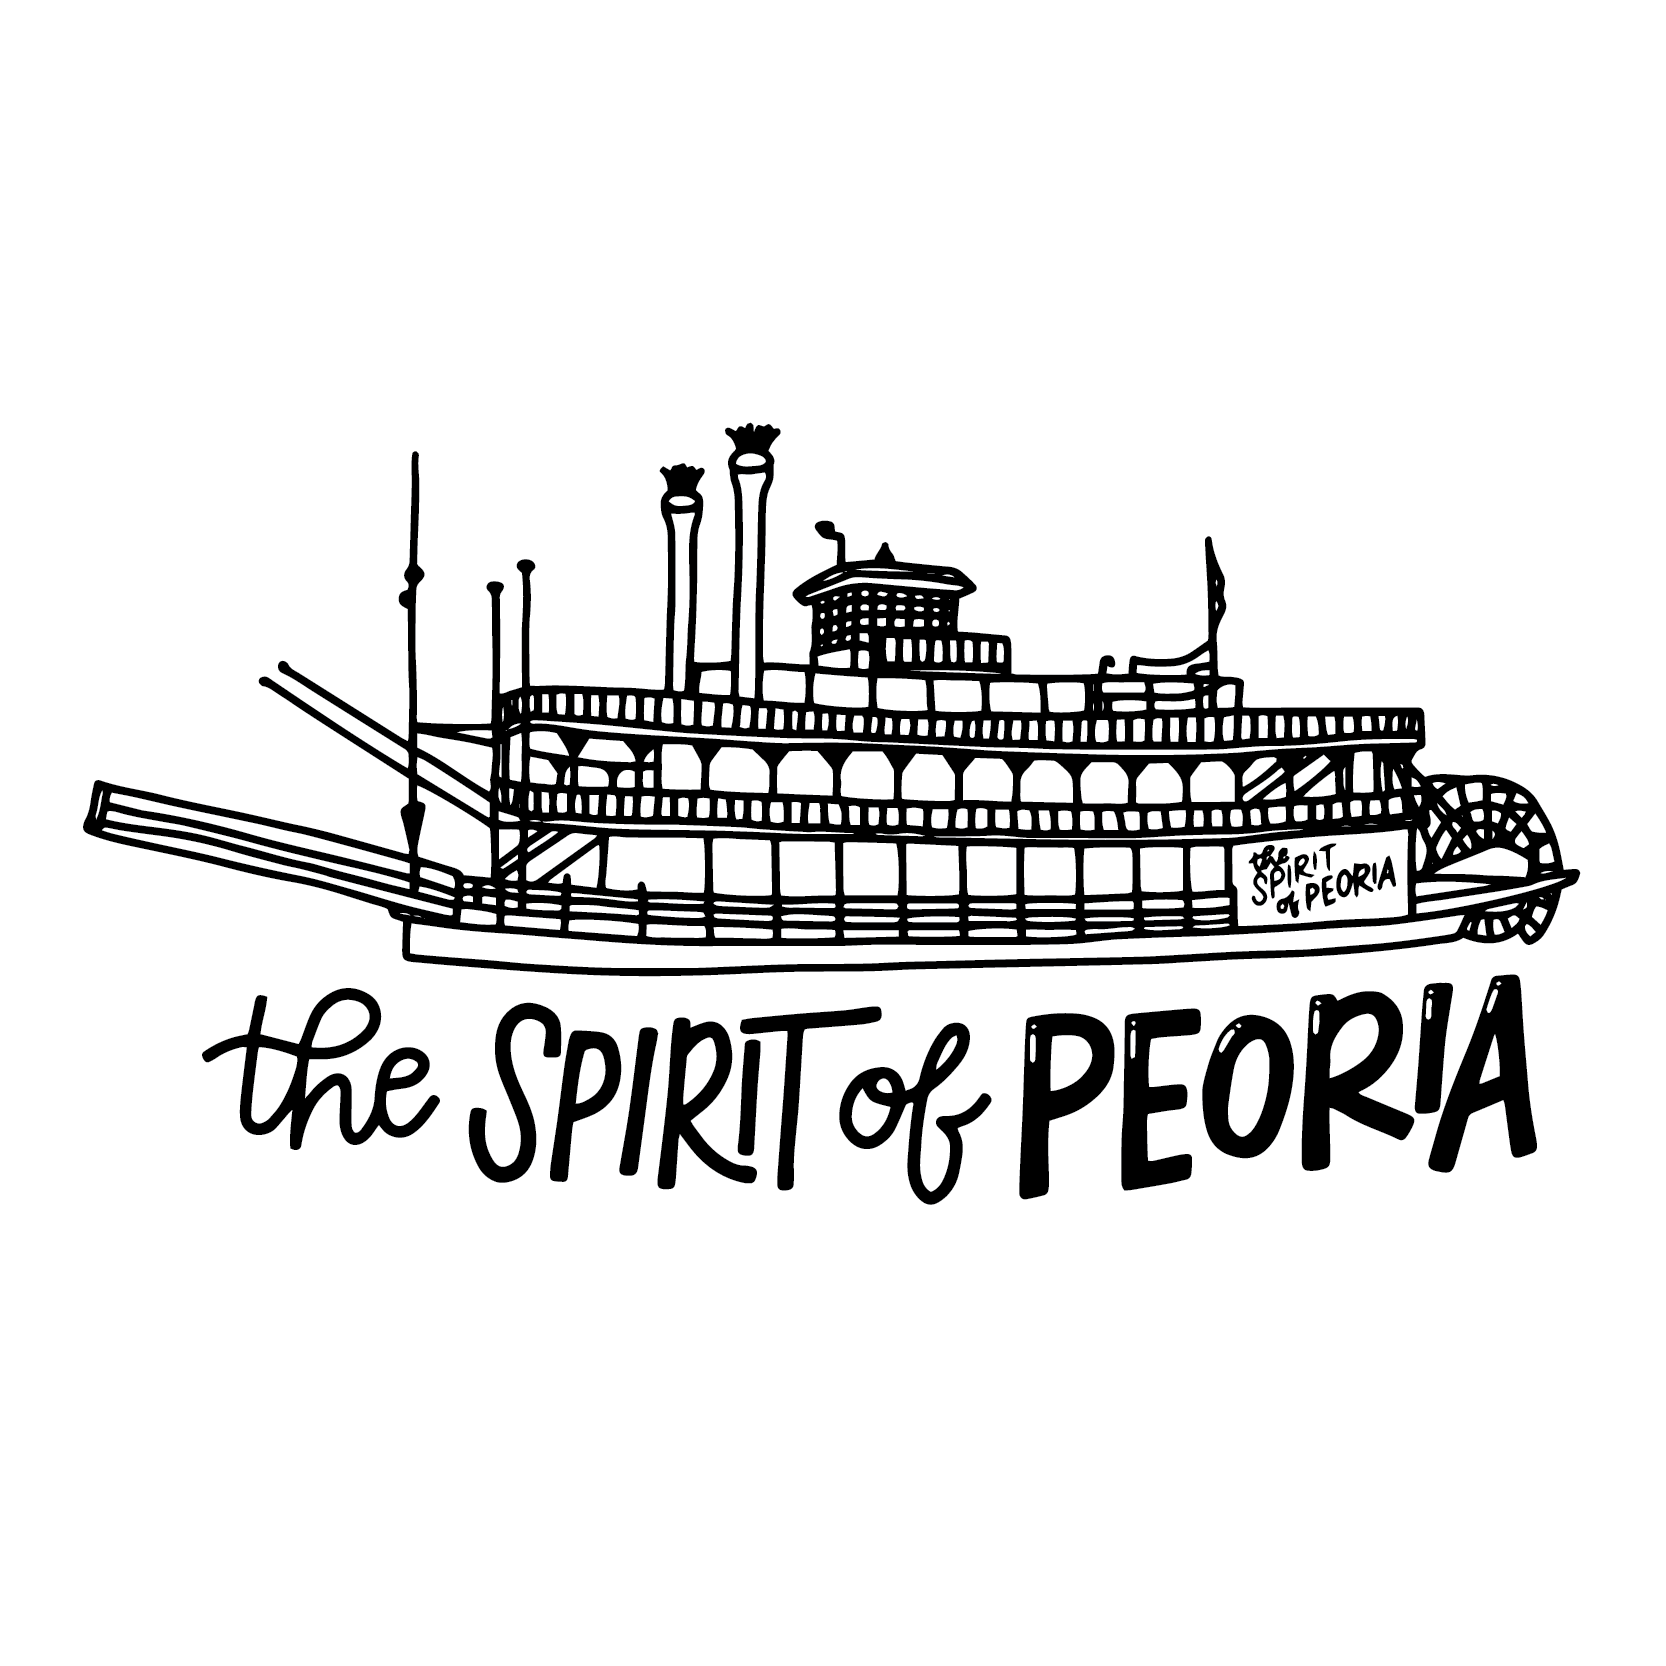 Spirit of Peoria Illustration